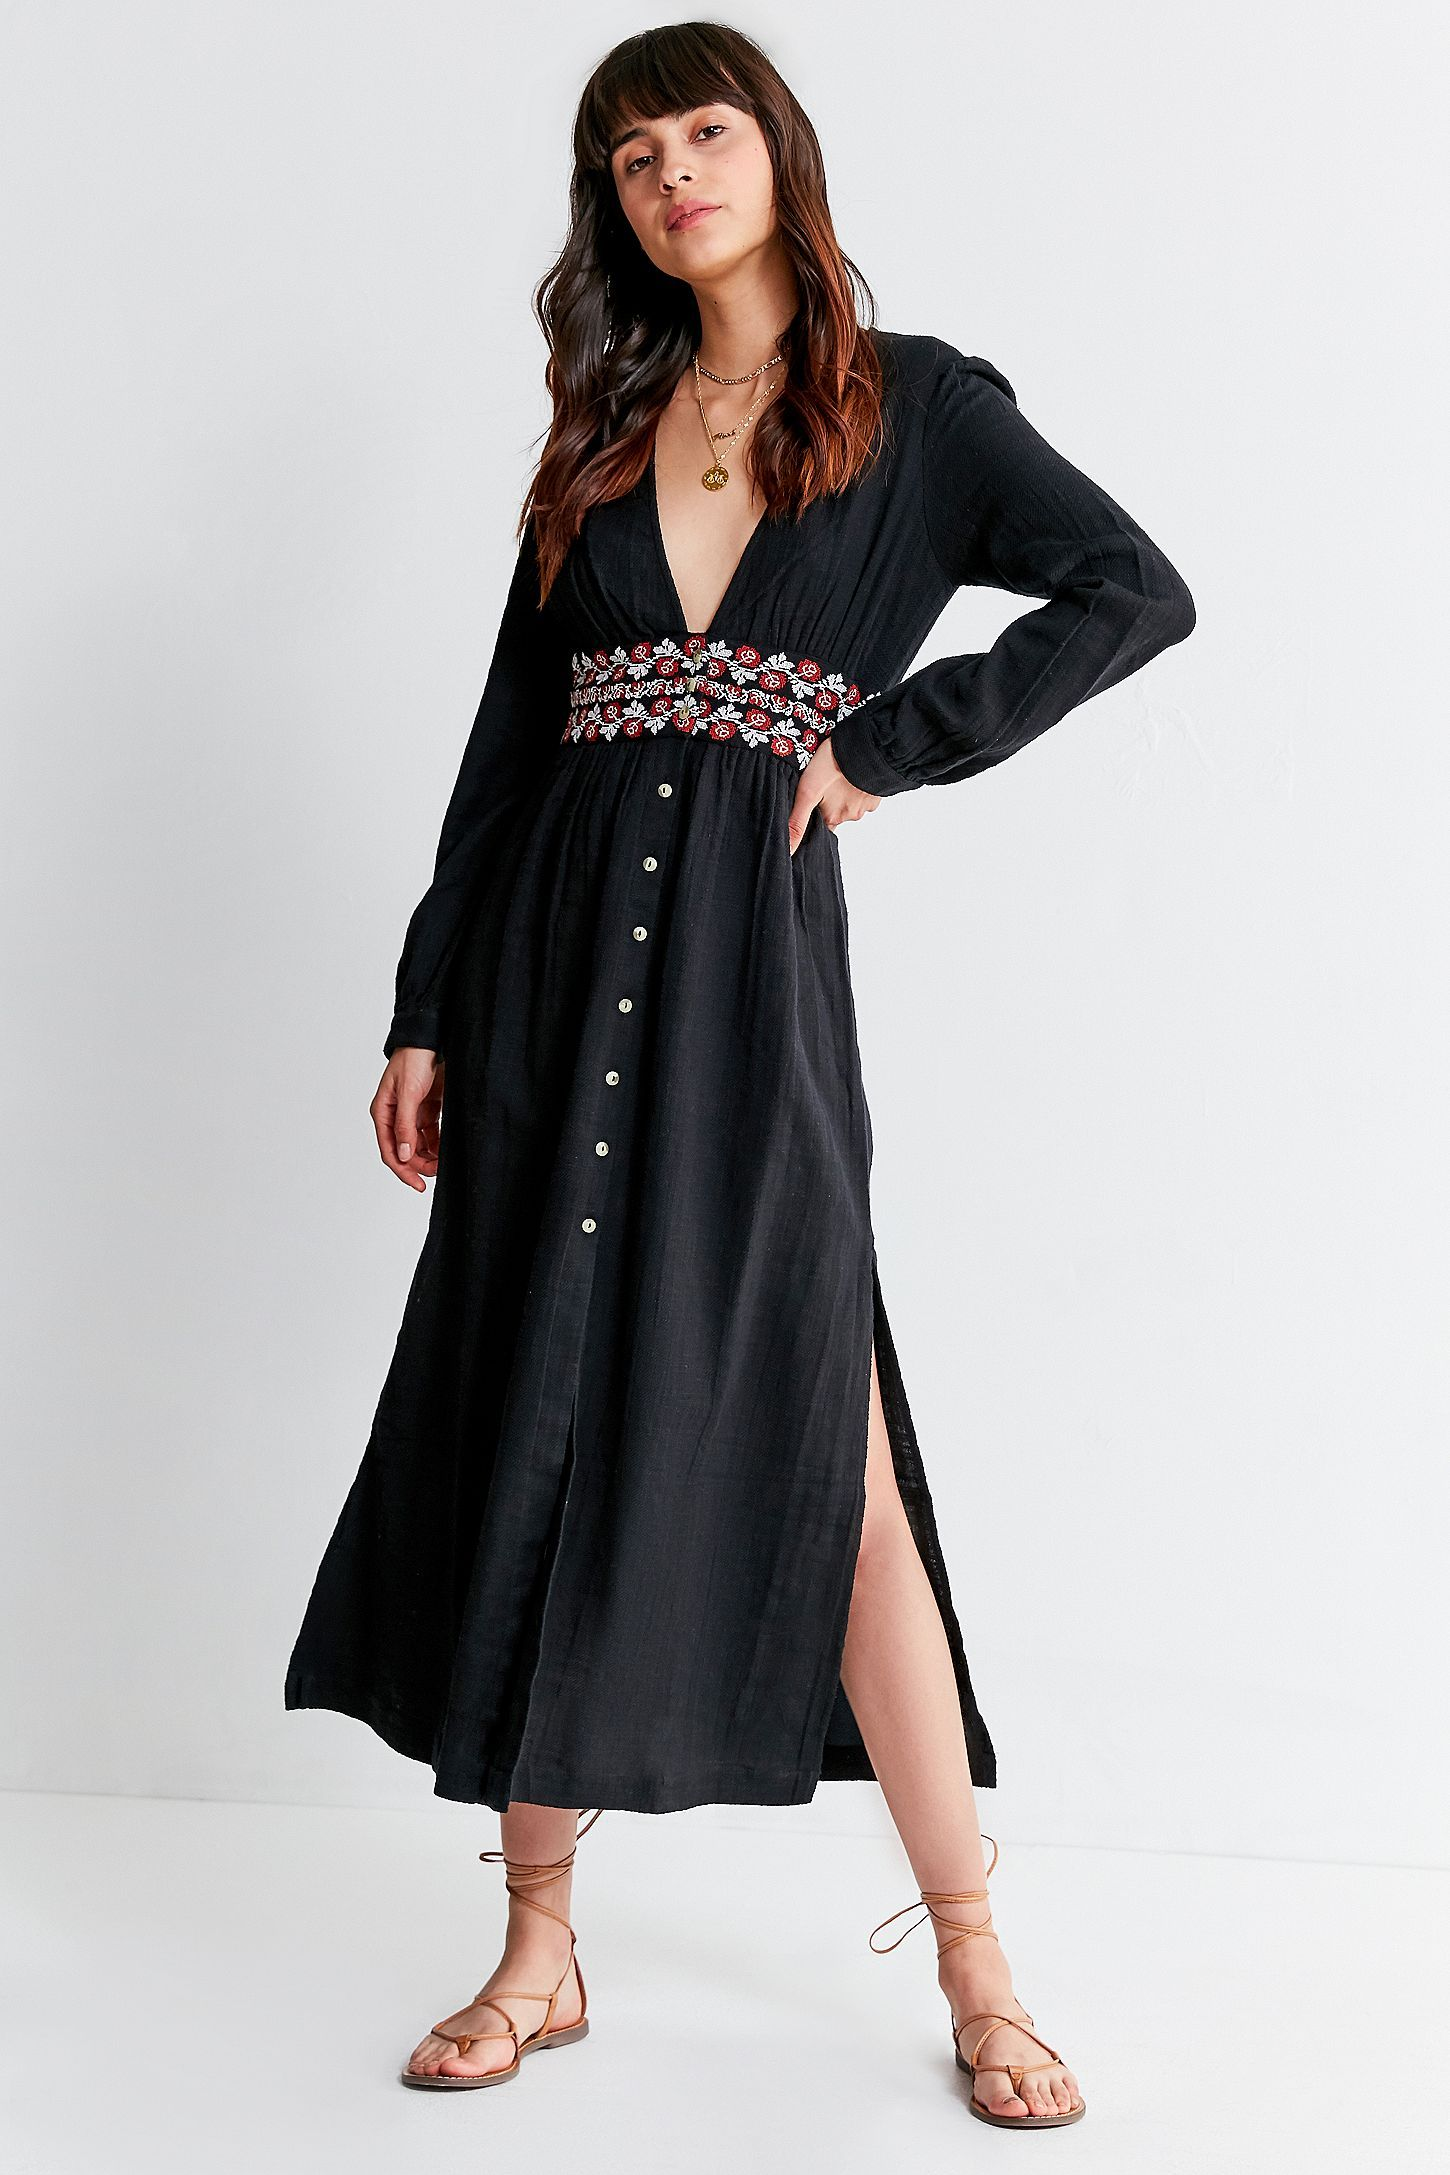 bb9fbb6860ea UO Last Dance Button-Down Midi Dress | Style | Dresses, Urban ...